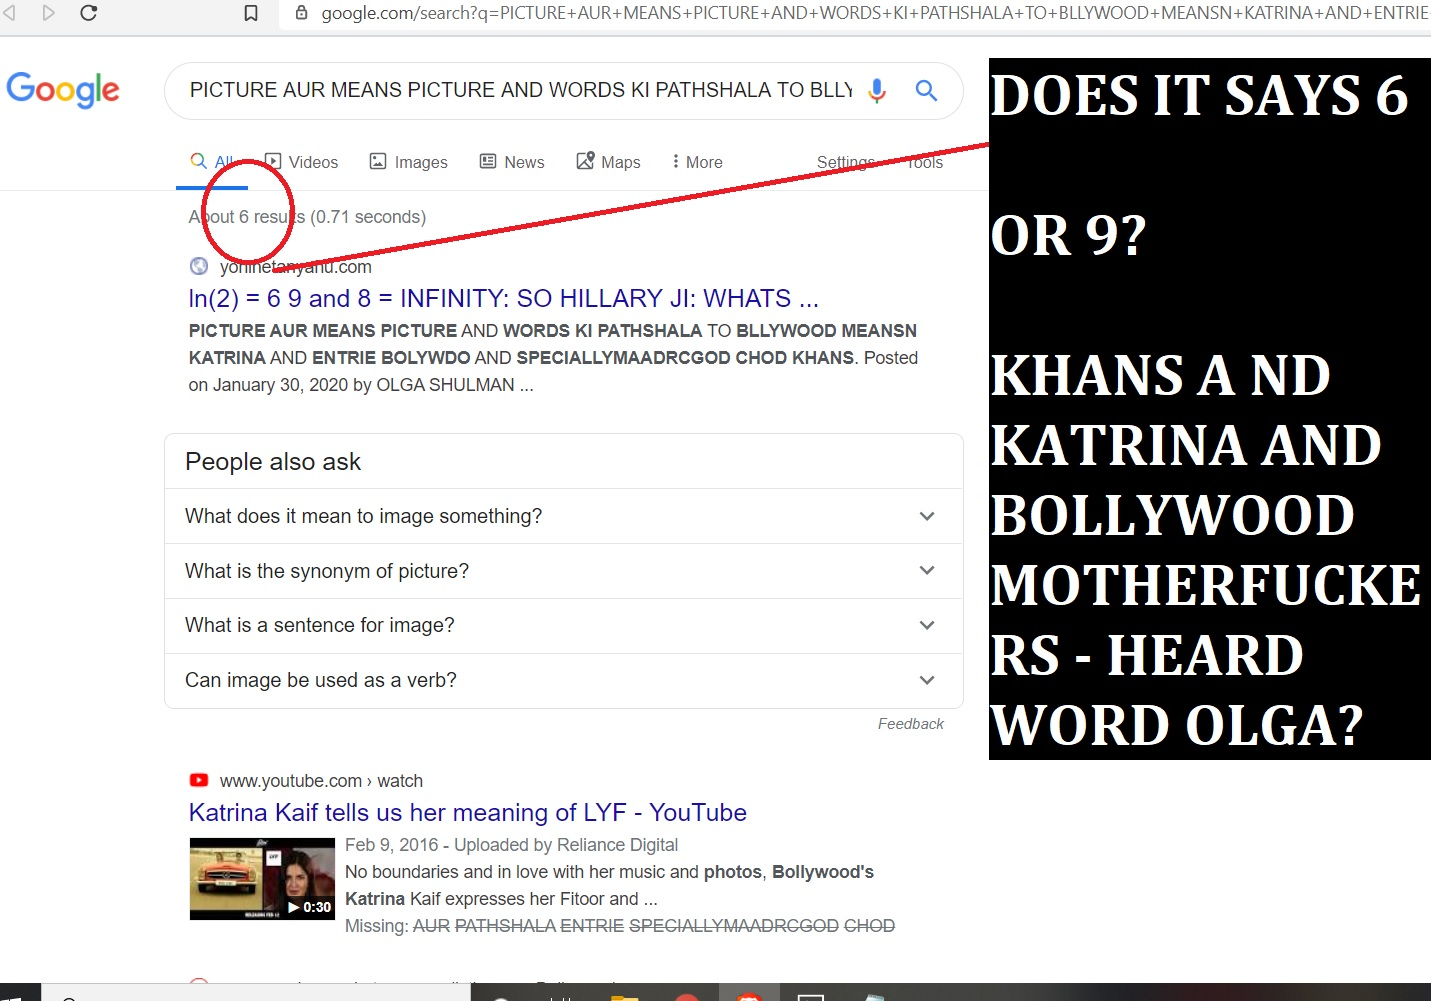 PICTRE KI PATHSHALA TO KHANS AND KATRINA AND MOTHERFUCKINGBOLLWYODO ENTRIE BOLLYWODO VIA GIOOGLE EYS, MAFADRCHOD HEARD WORD GOGOL AND OLGA